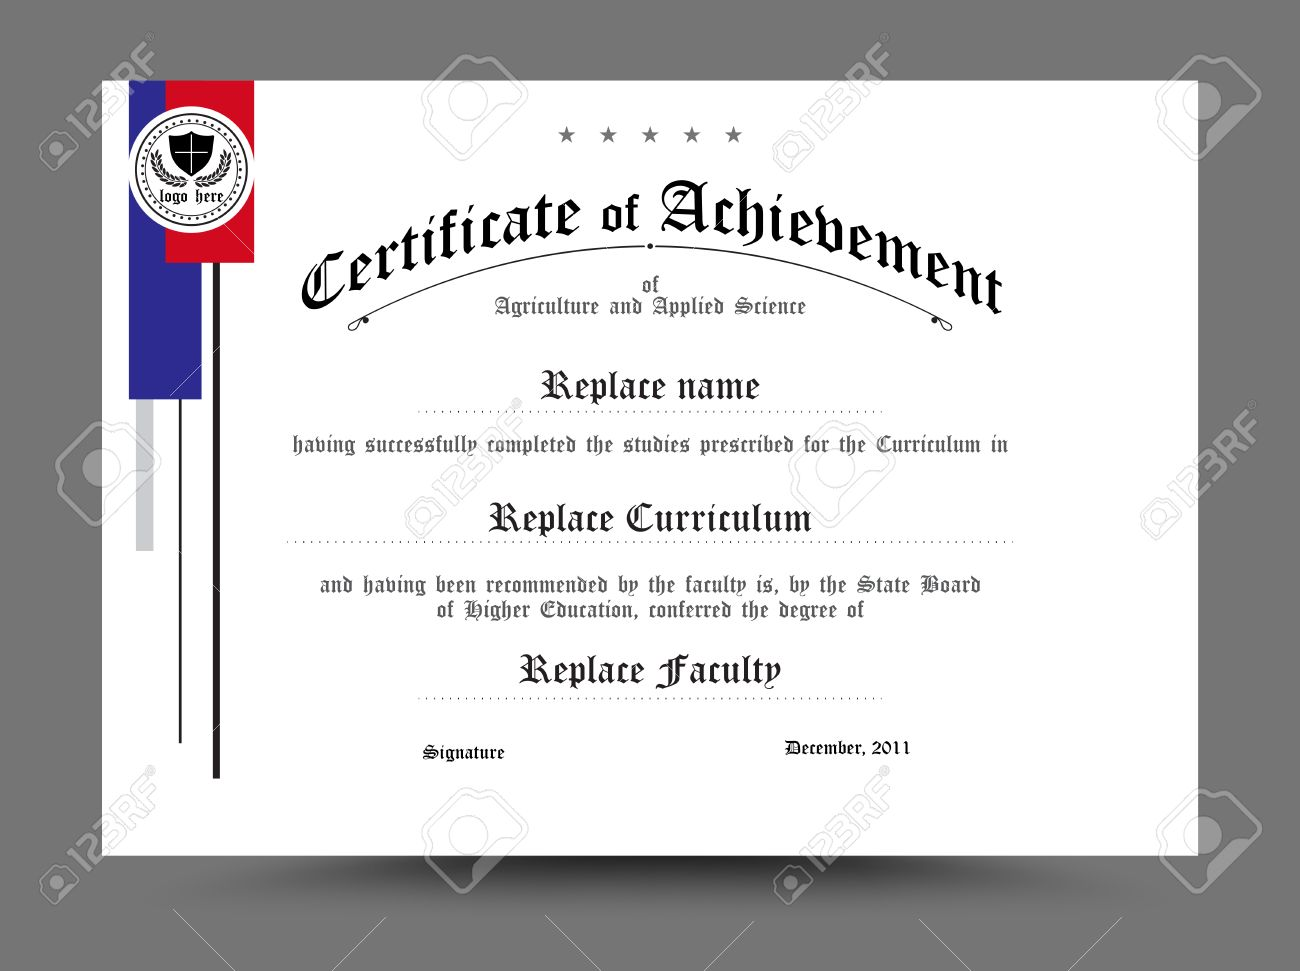 diploma certificate template design vector illustration royalty